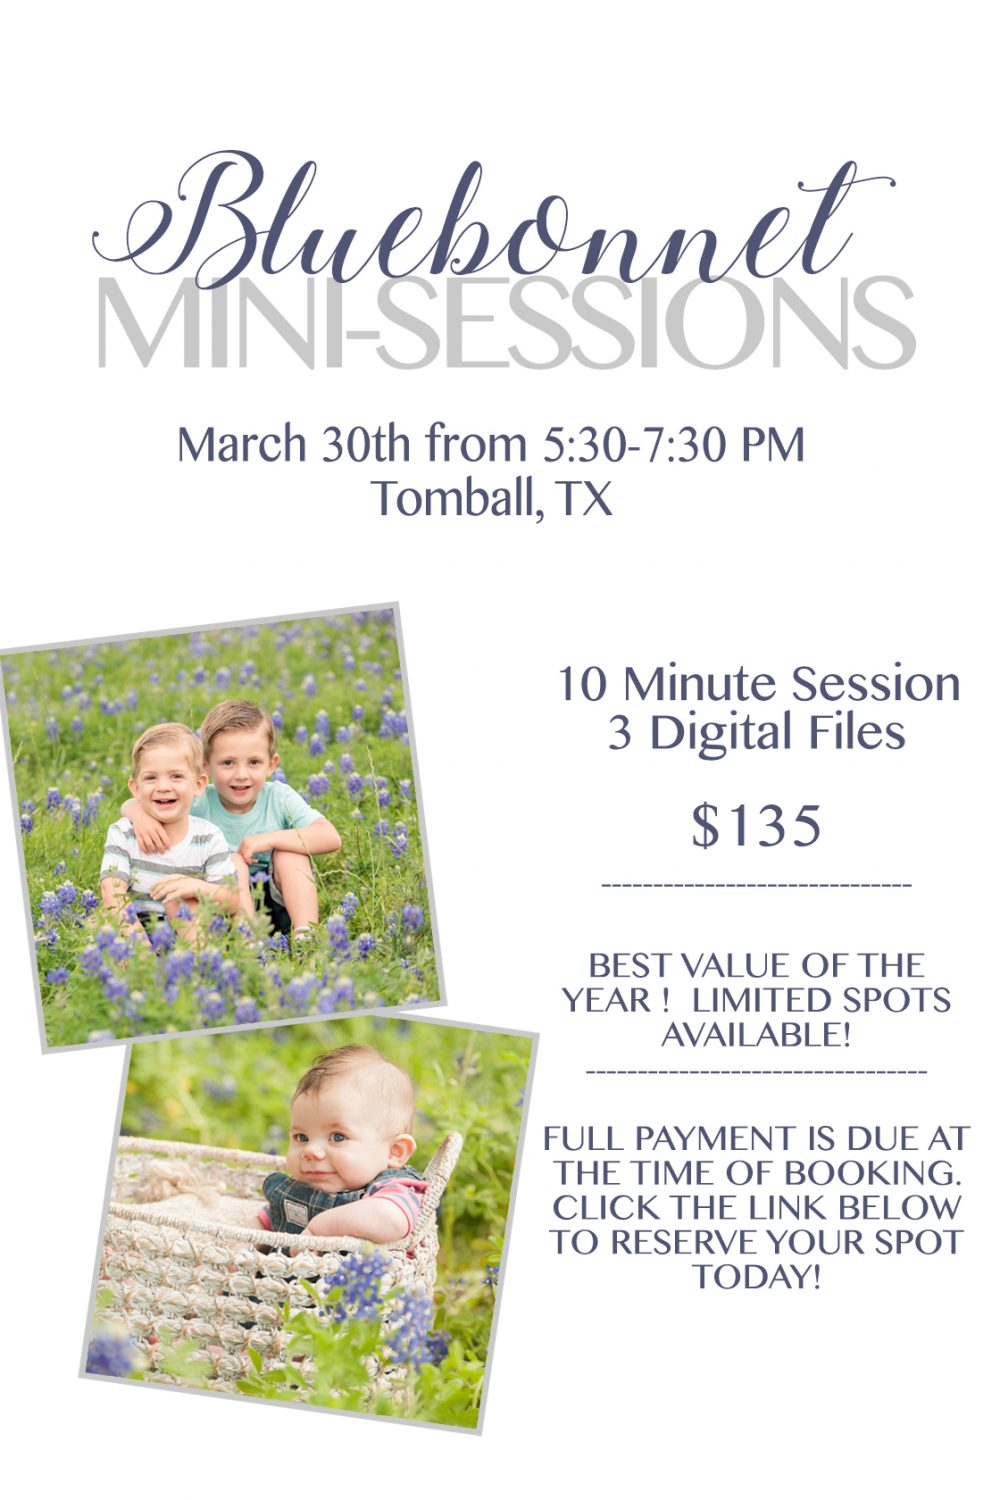 Bluebonnet Mini Sessions in Tomball, TX